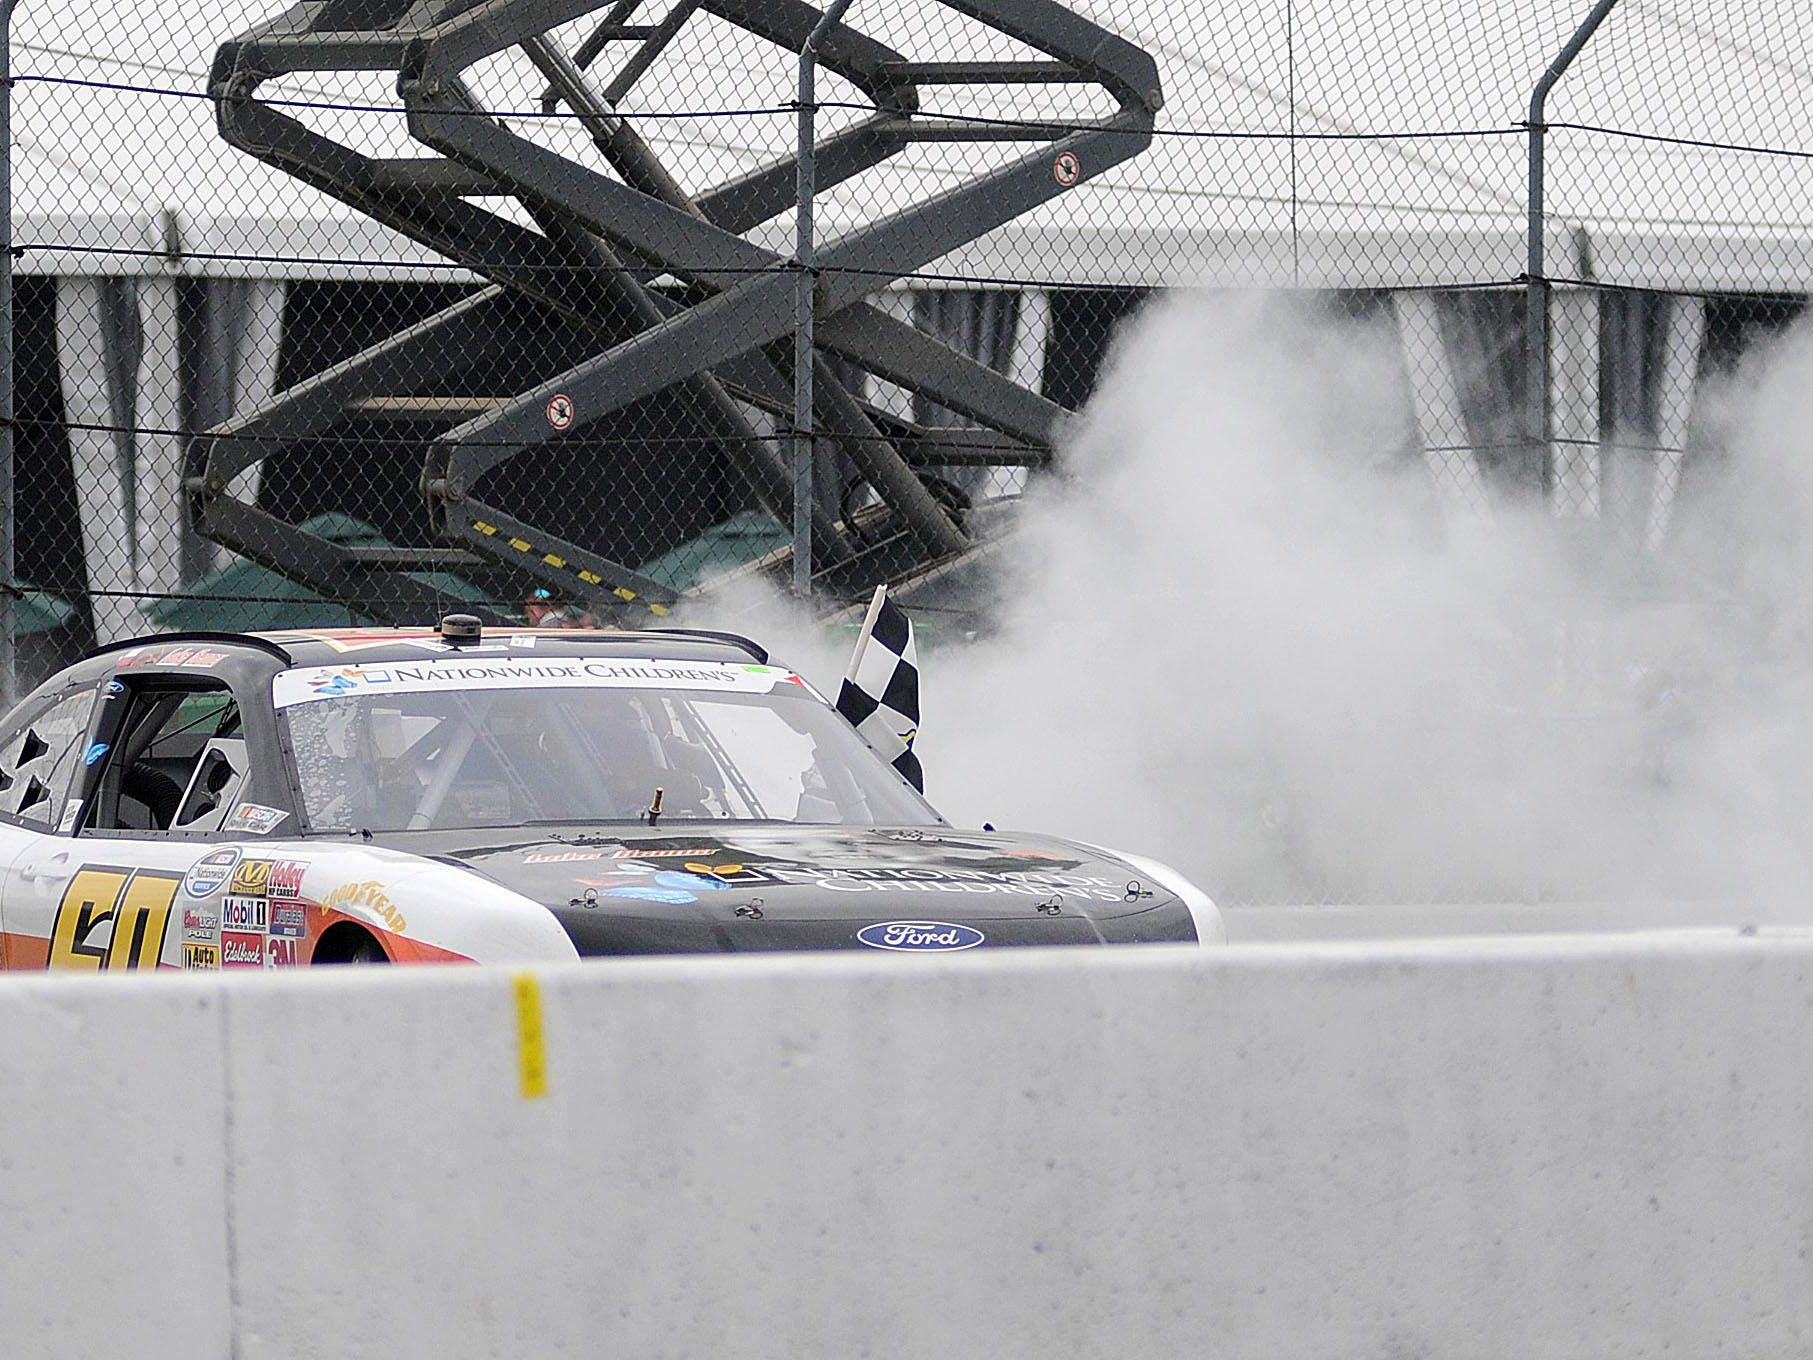 Chris Buescher burns rubber after winning the second Nationwide Children's Hospital 200 last year at the Mid-Ohio Sports Car Course. Buescher, who leads the NASCAR Xfinity Series points standings, will be back for the race Aug. 15 to defend his win.